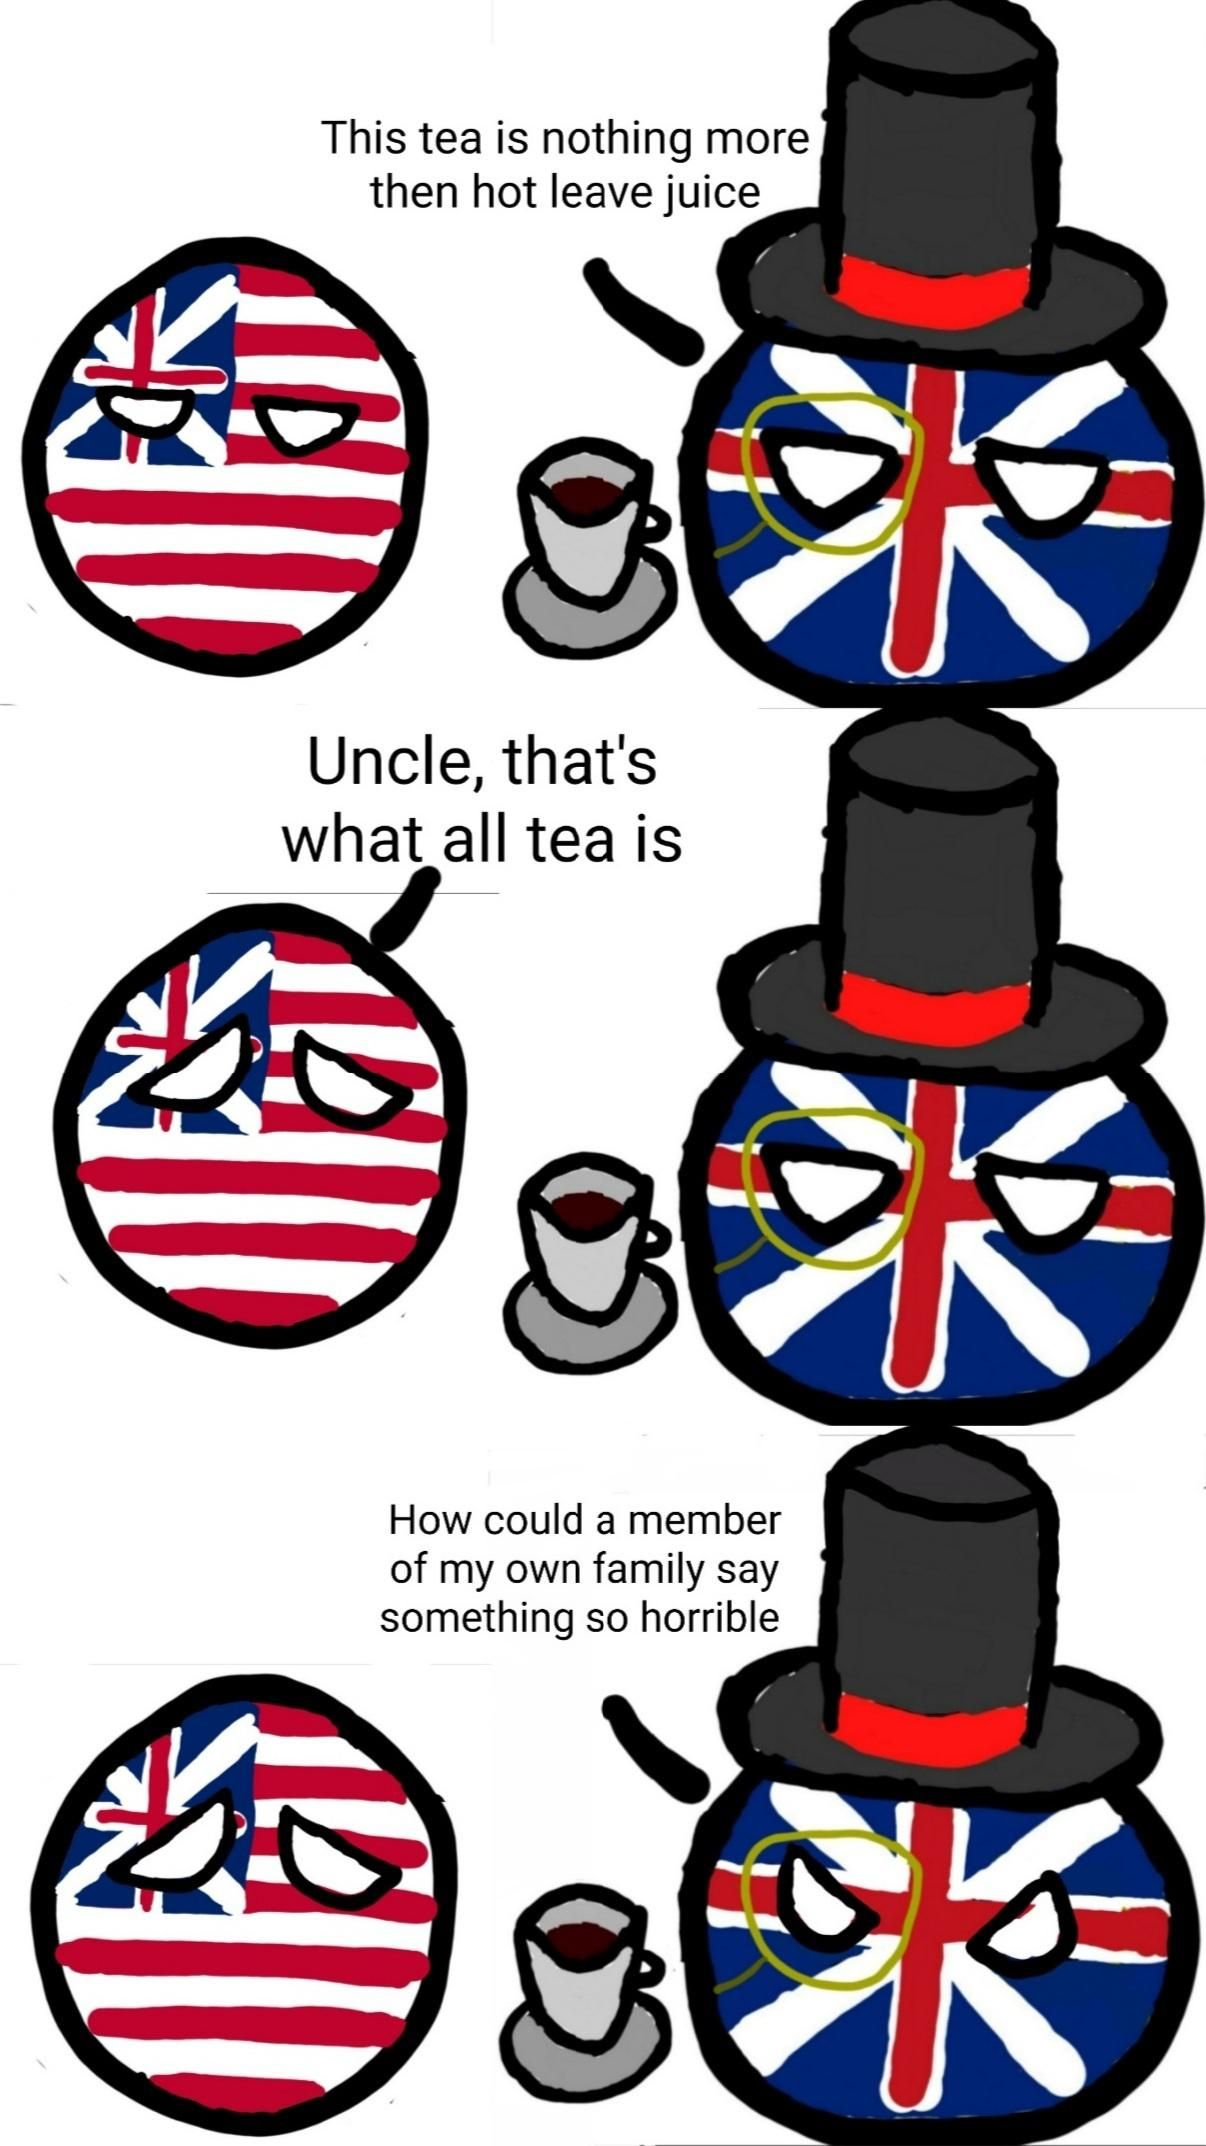 Relation of Great Britain and the 13 colonies